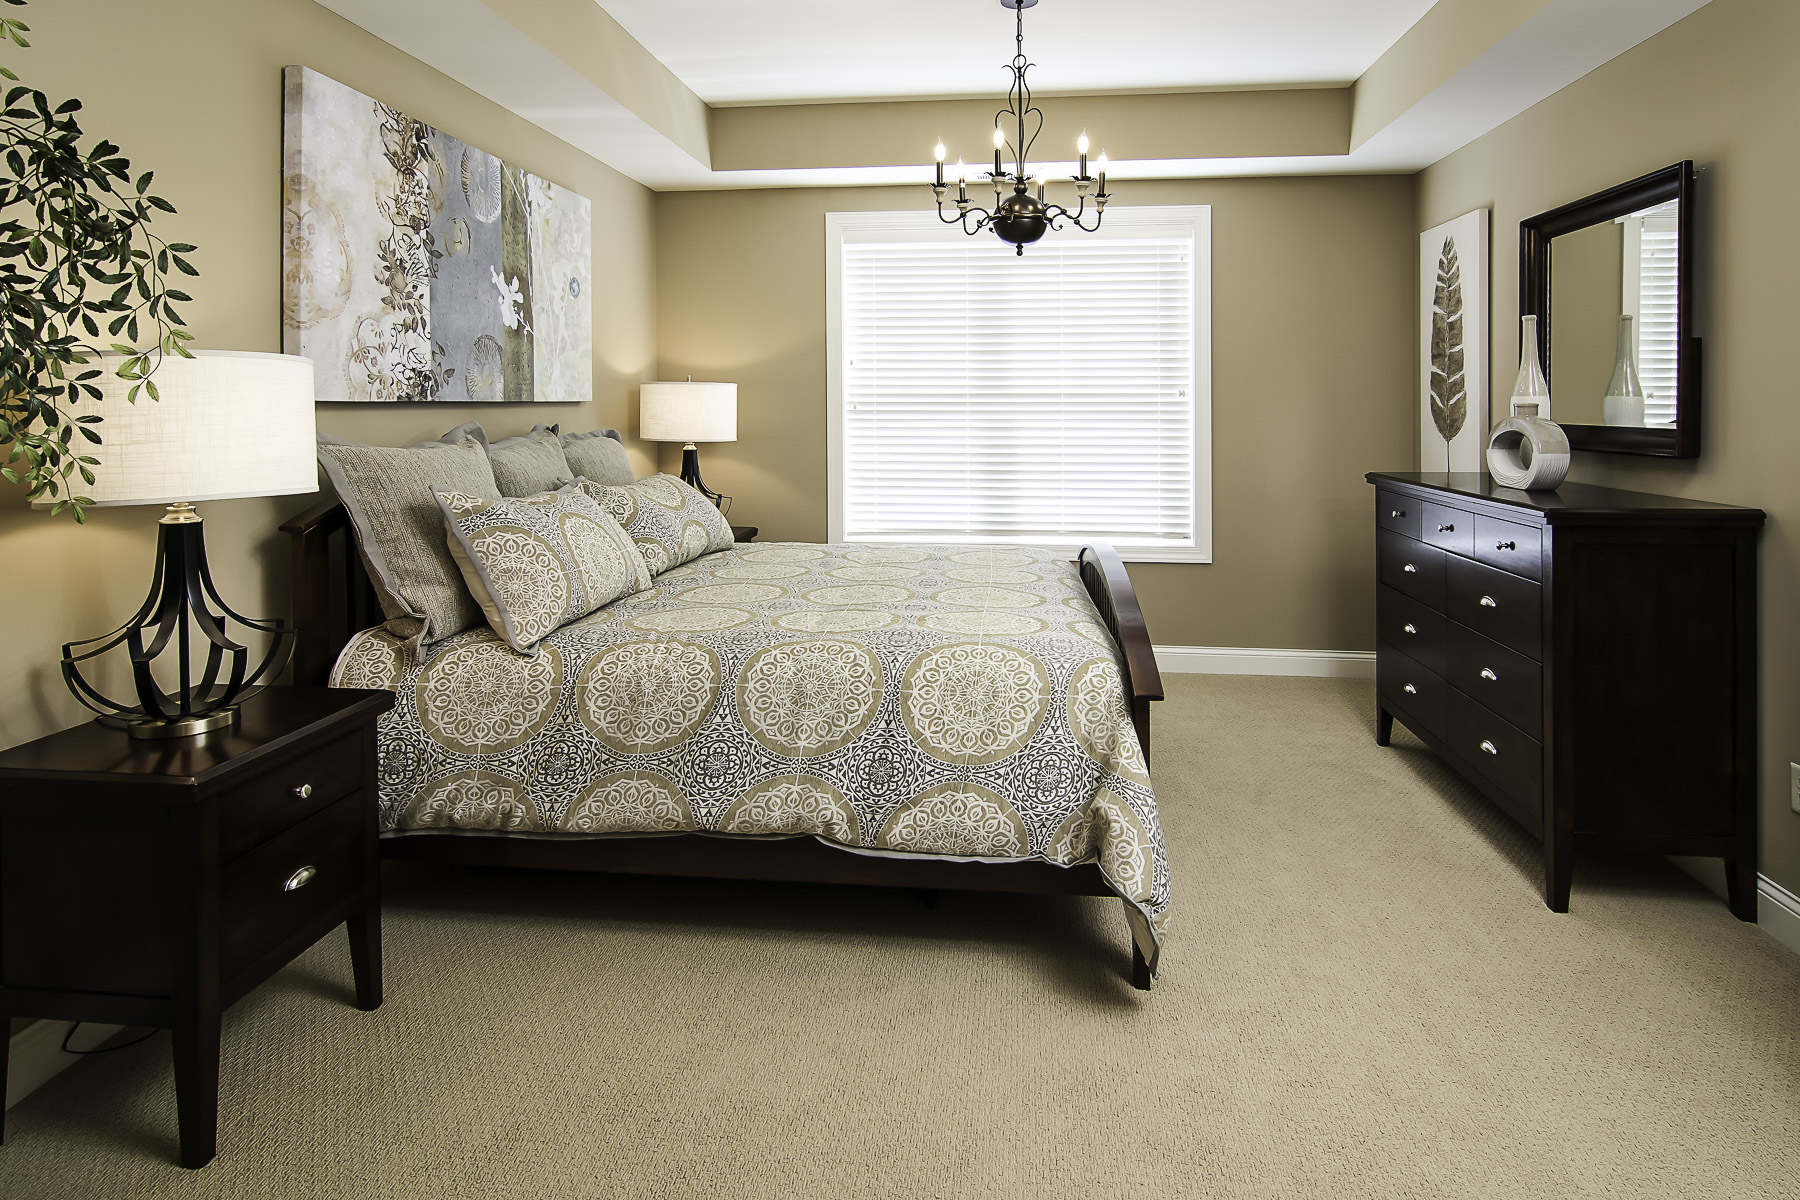 11 Master Bedroom Ron Clark Construction Design